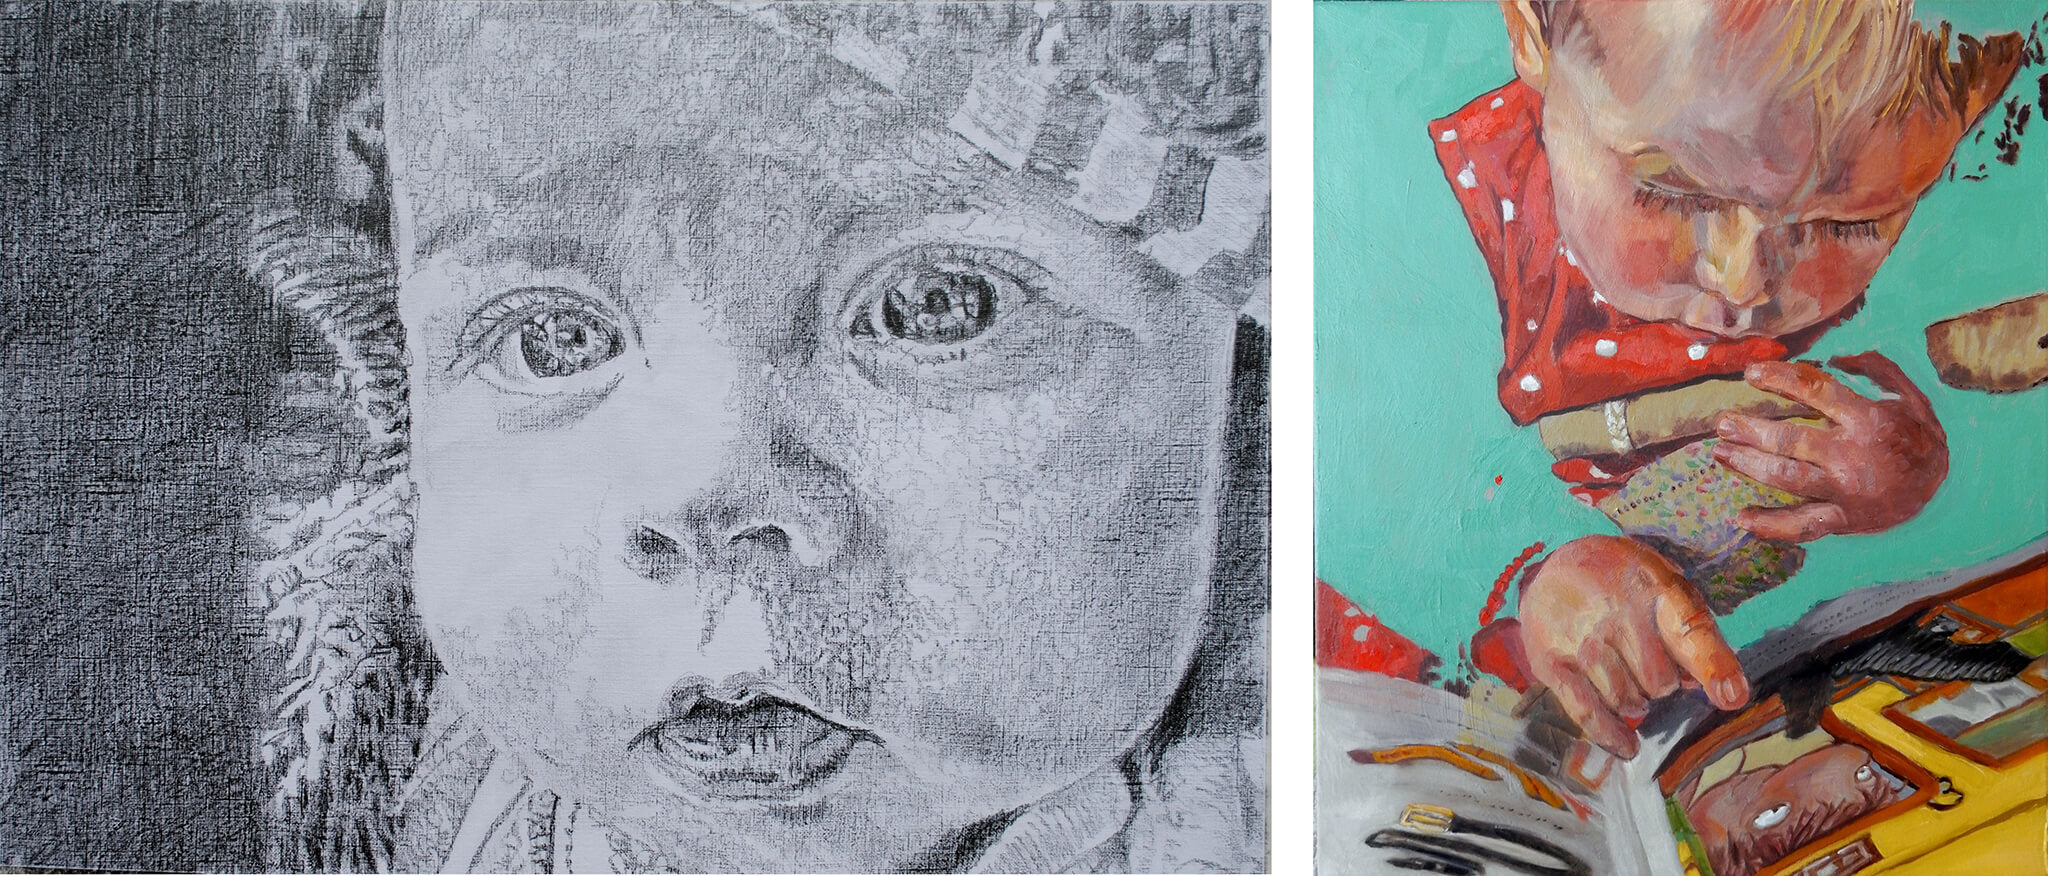 Daisy child portraits - pencil on paper and oil on canvas artworks - by Stella Tooth.